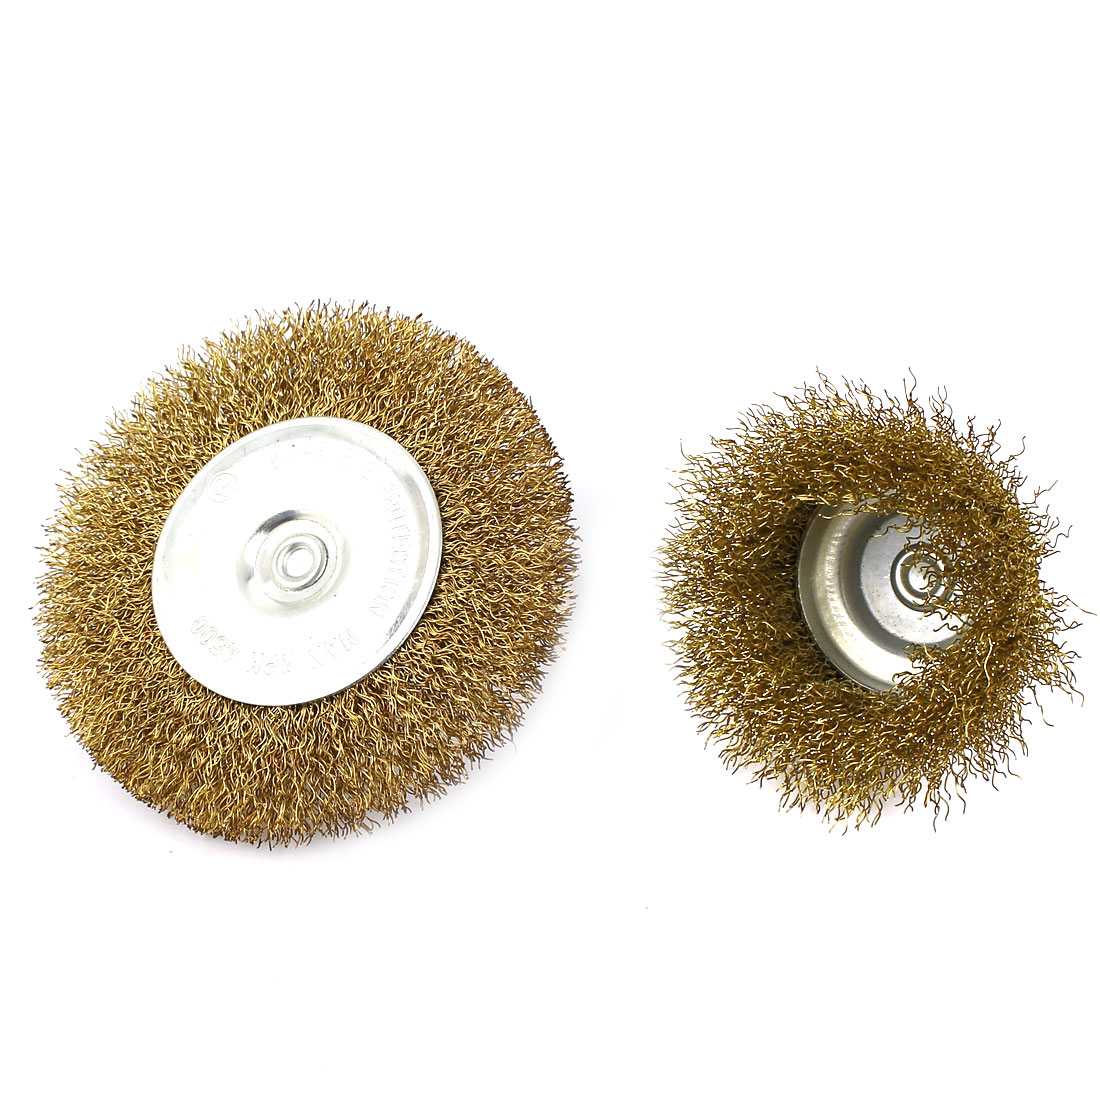 6mm Dia Shank Multi Size Flat Cup Wire Wheel Brush 2 in 1 Set for Polishing